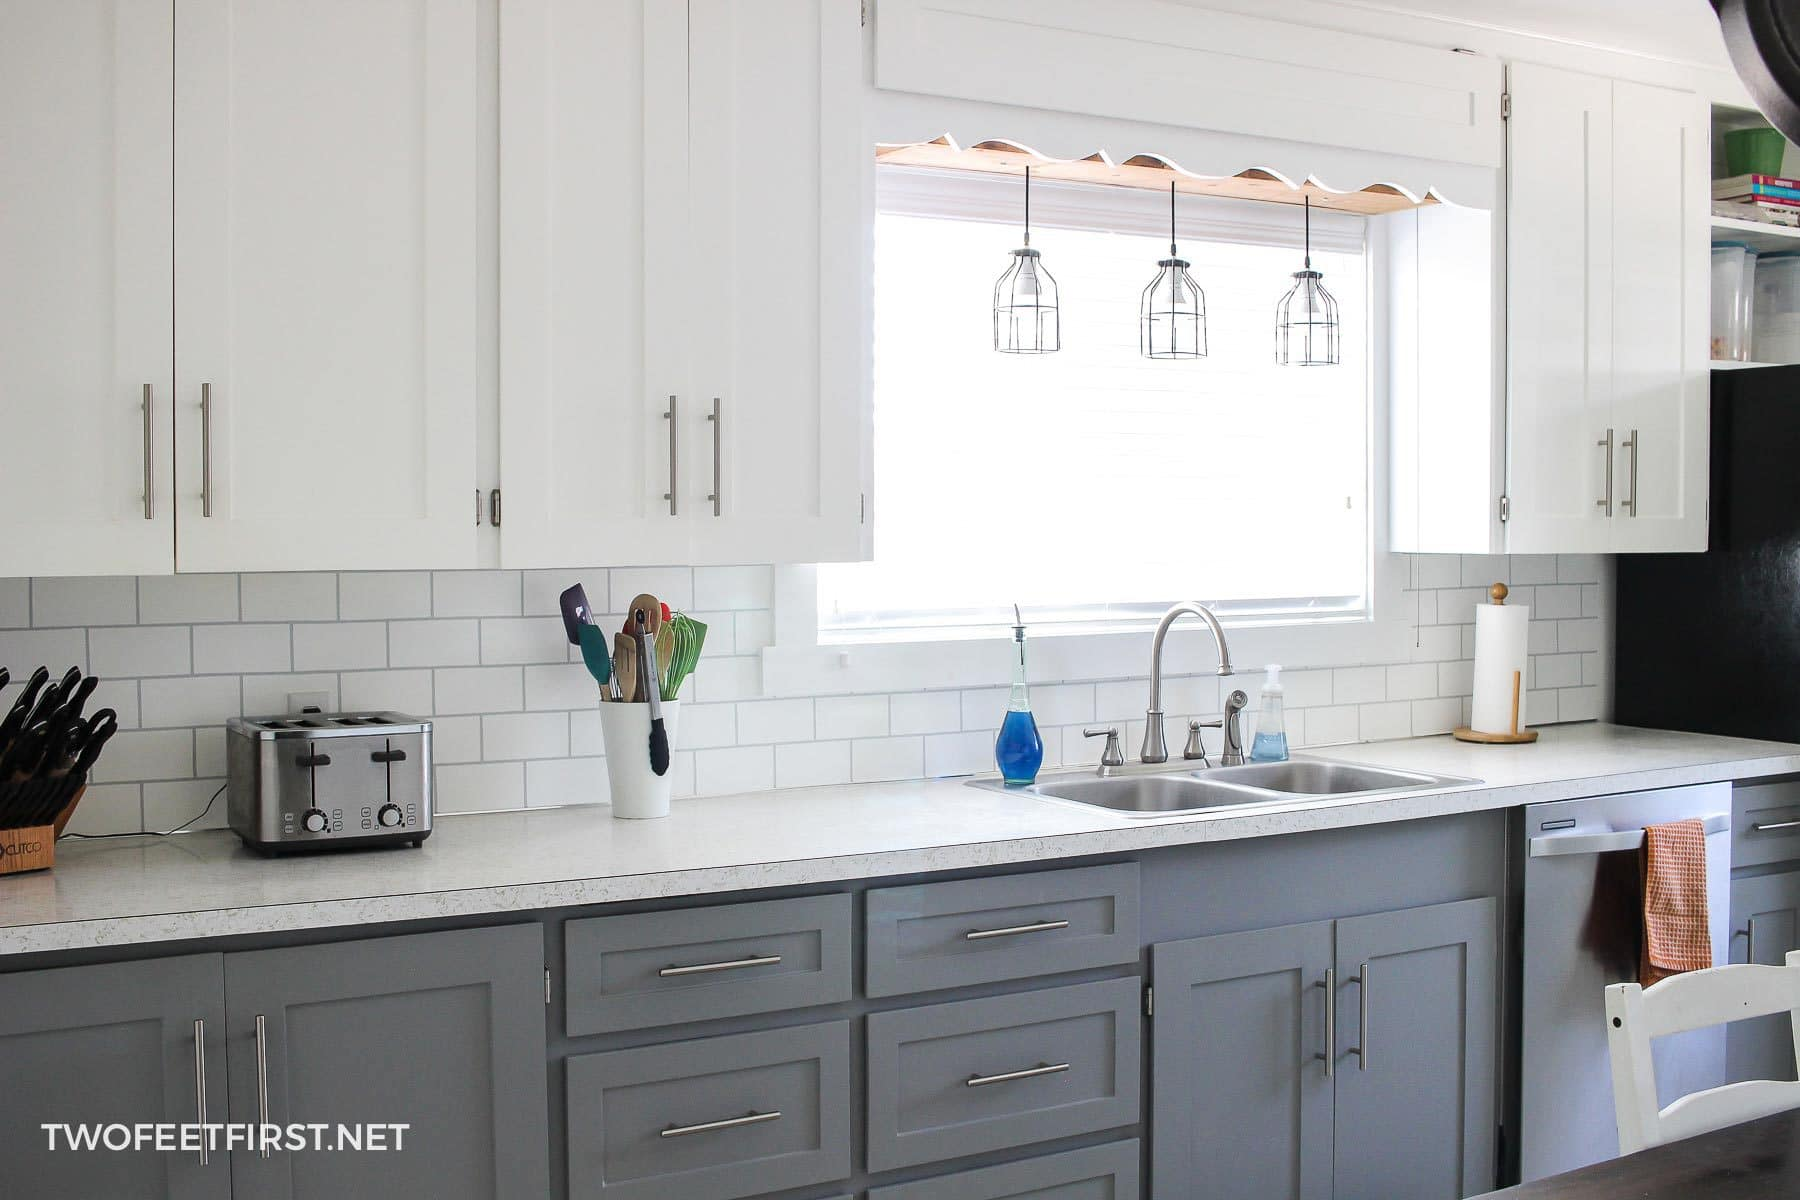 Update kitchen cabinets without replacing them by adding trim